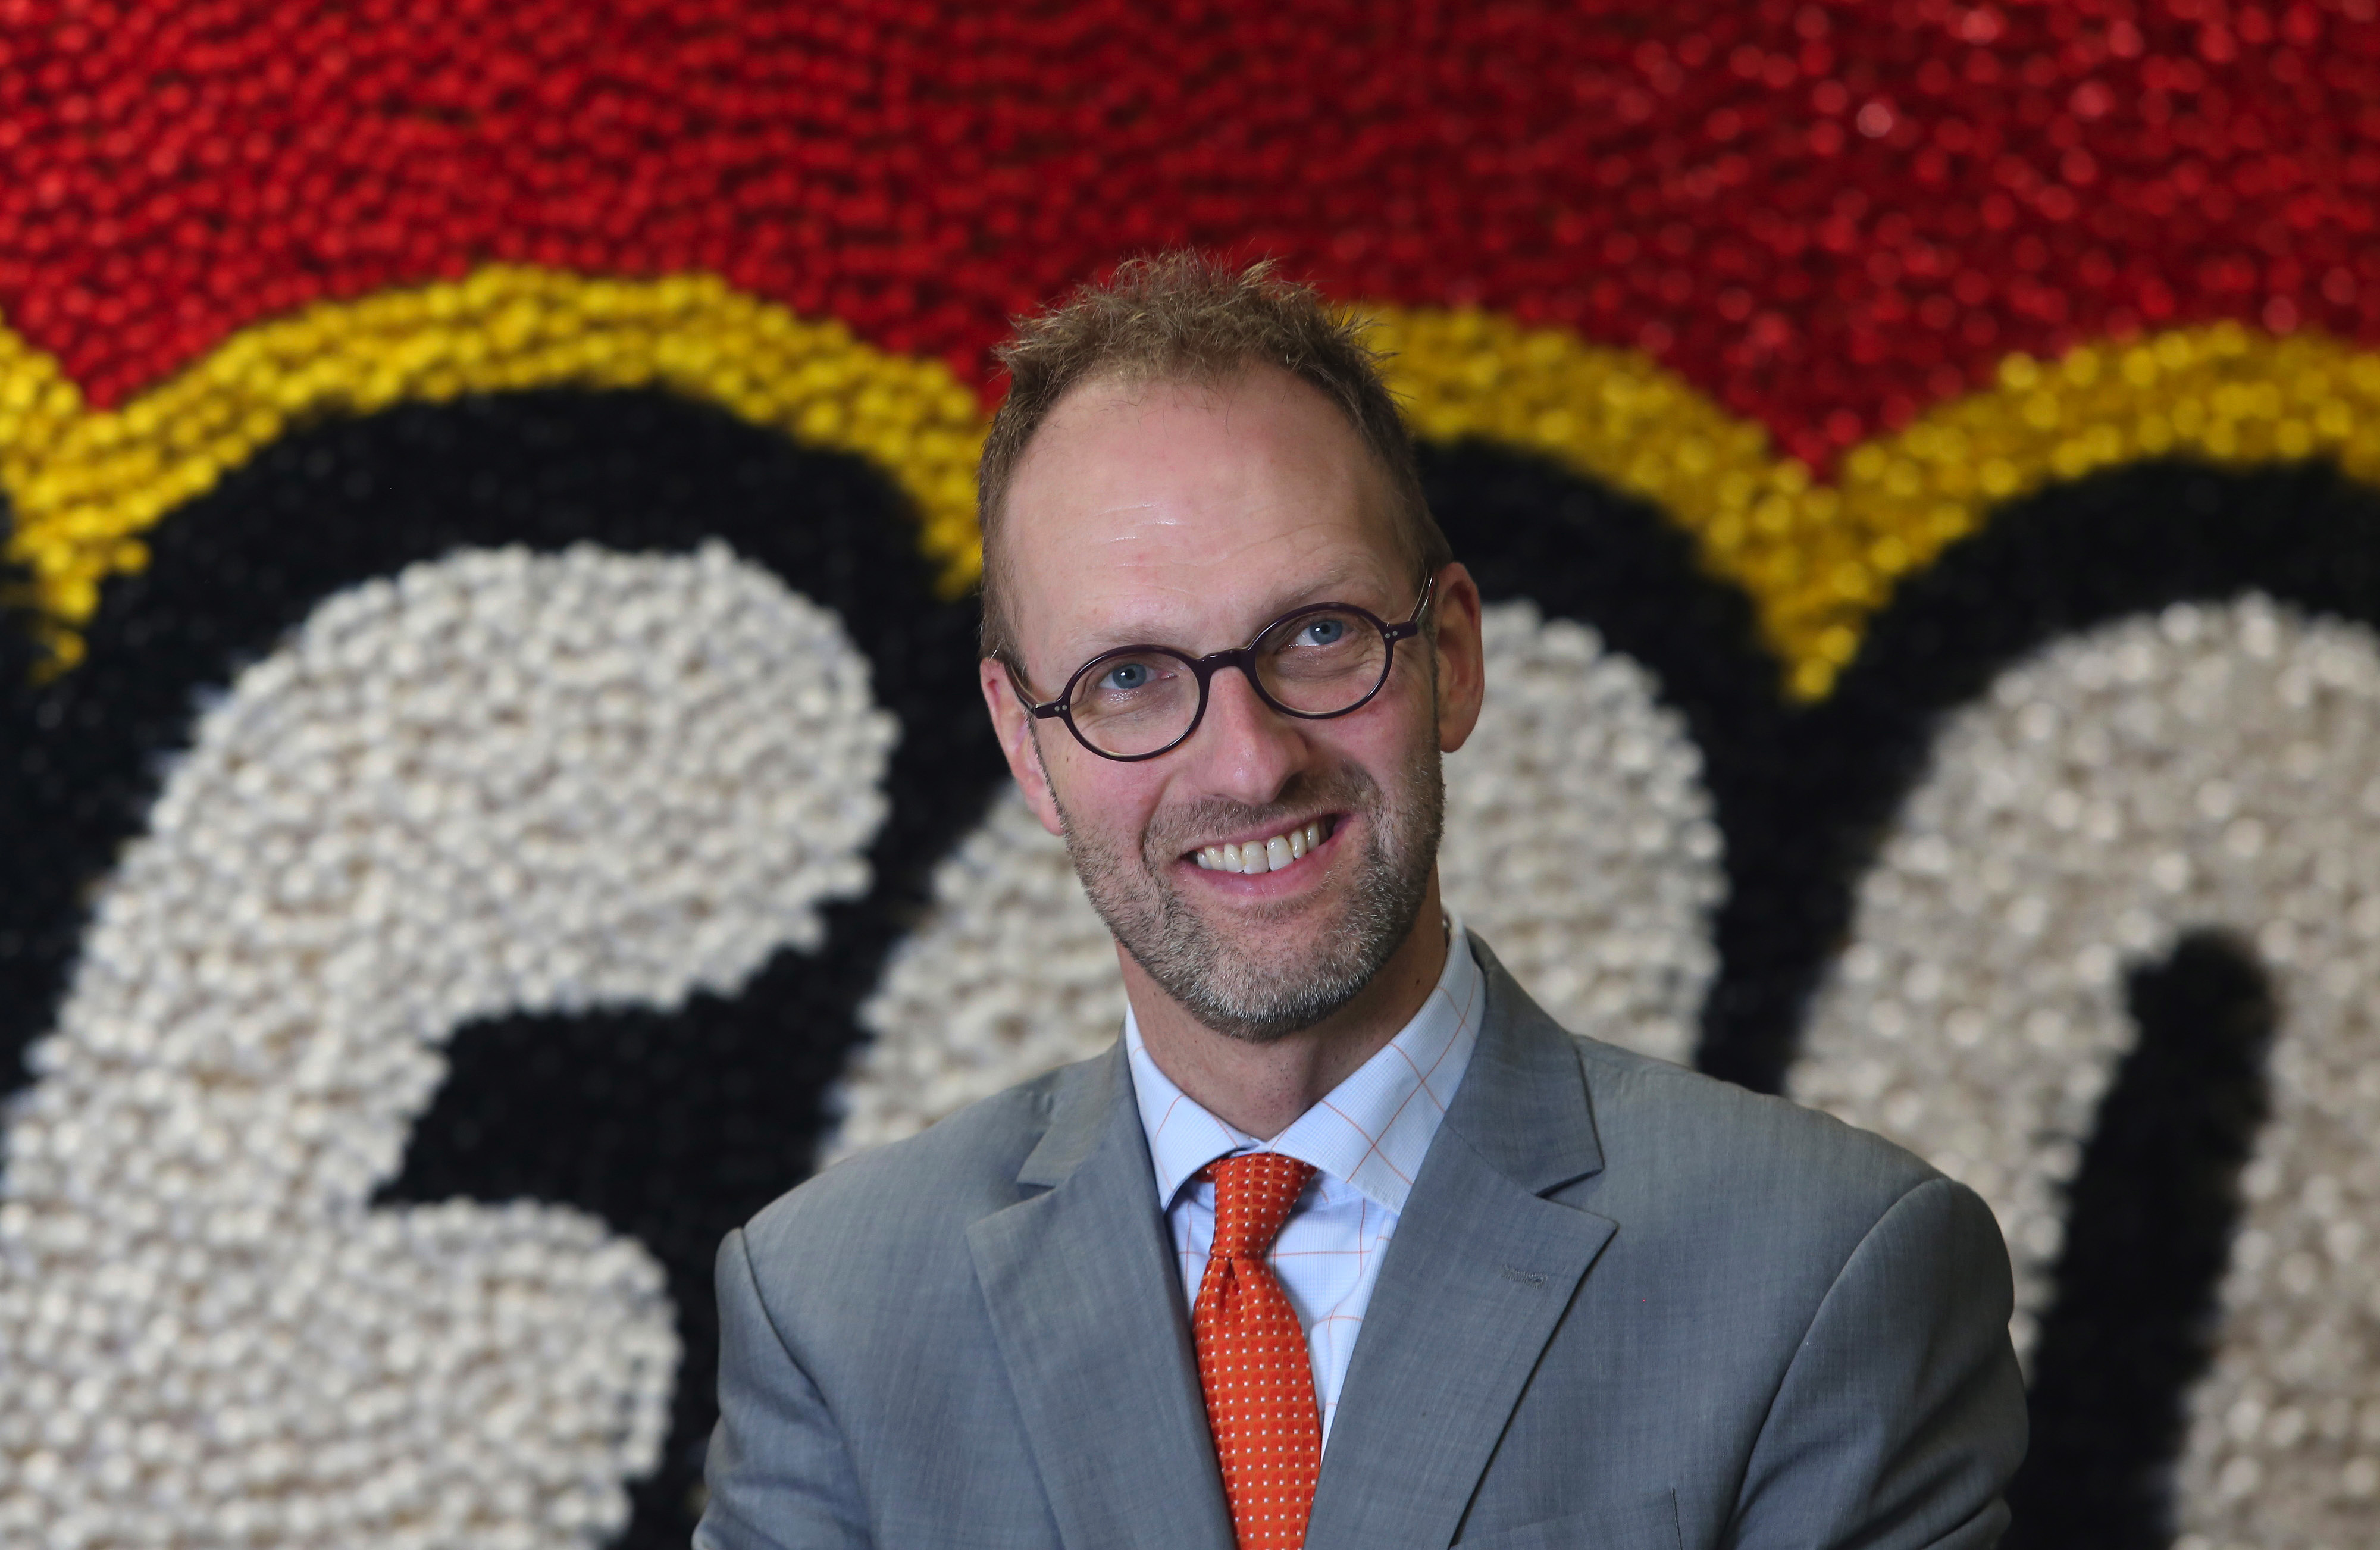 Lego A/S Chief Executive Officer Jorgen Vig Knudstorp Opens New London Offices